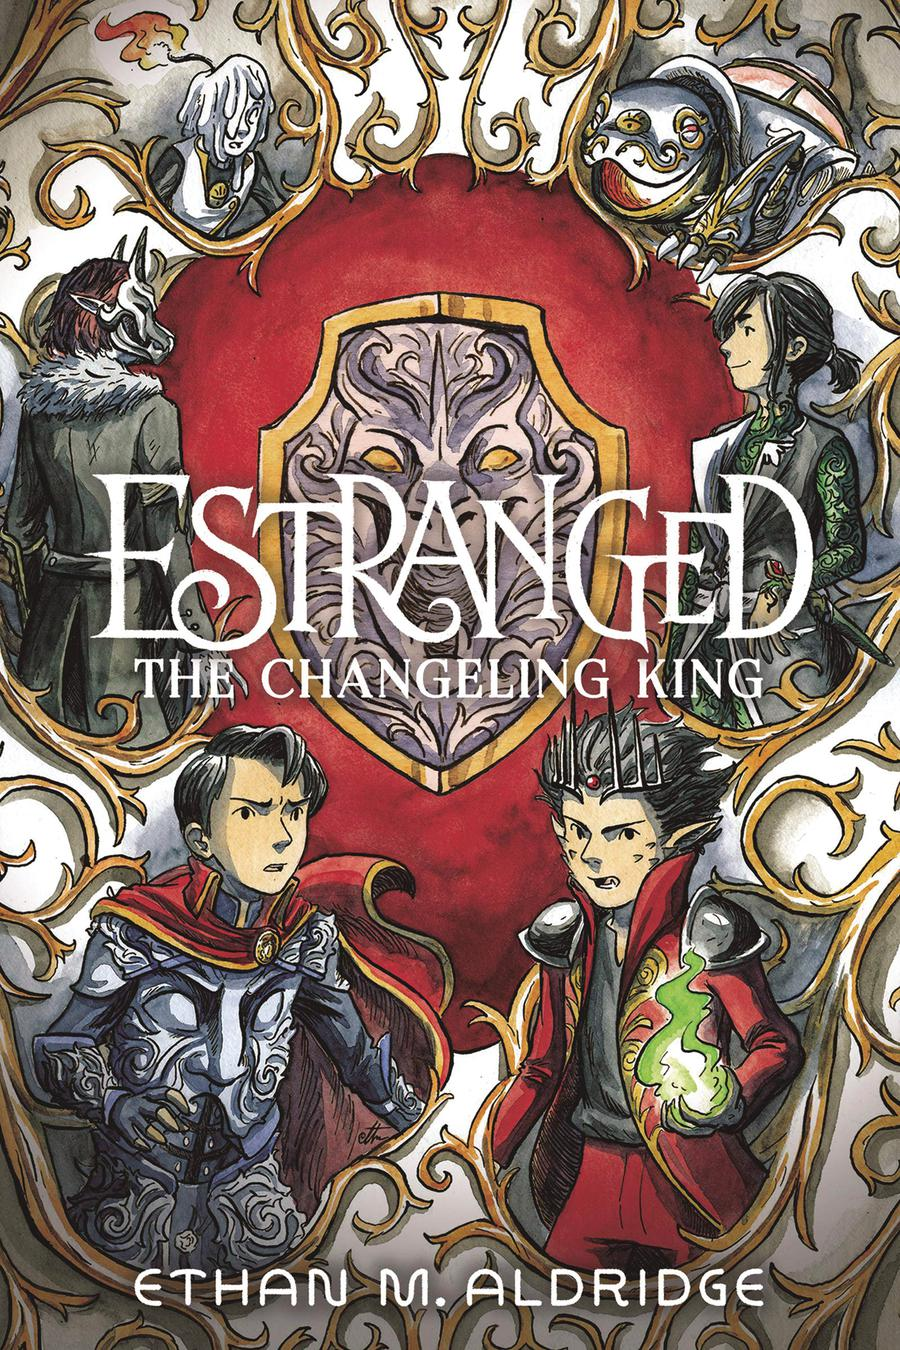 Estranged Vol 2 Changeling King TP